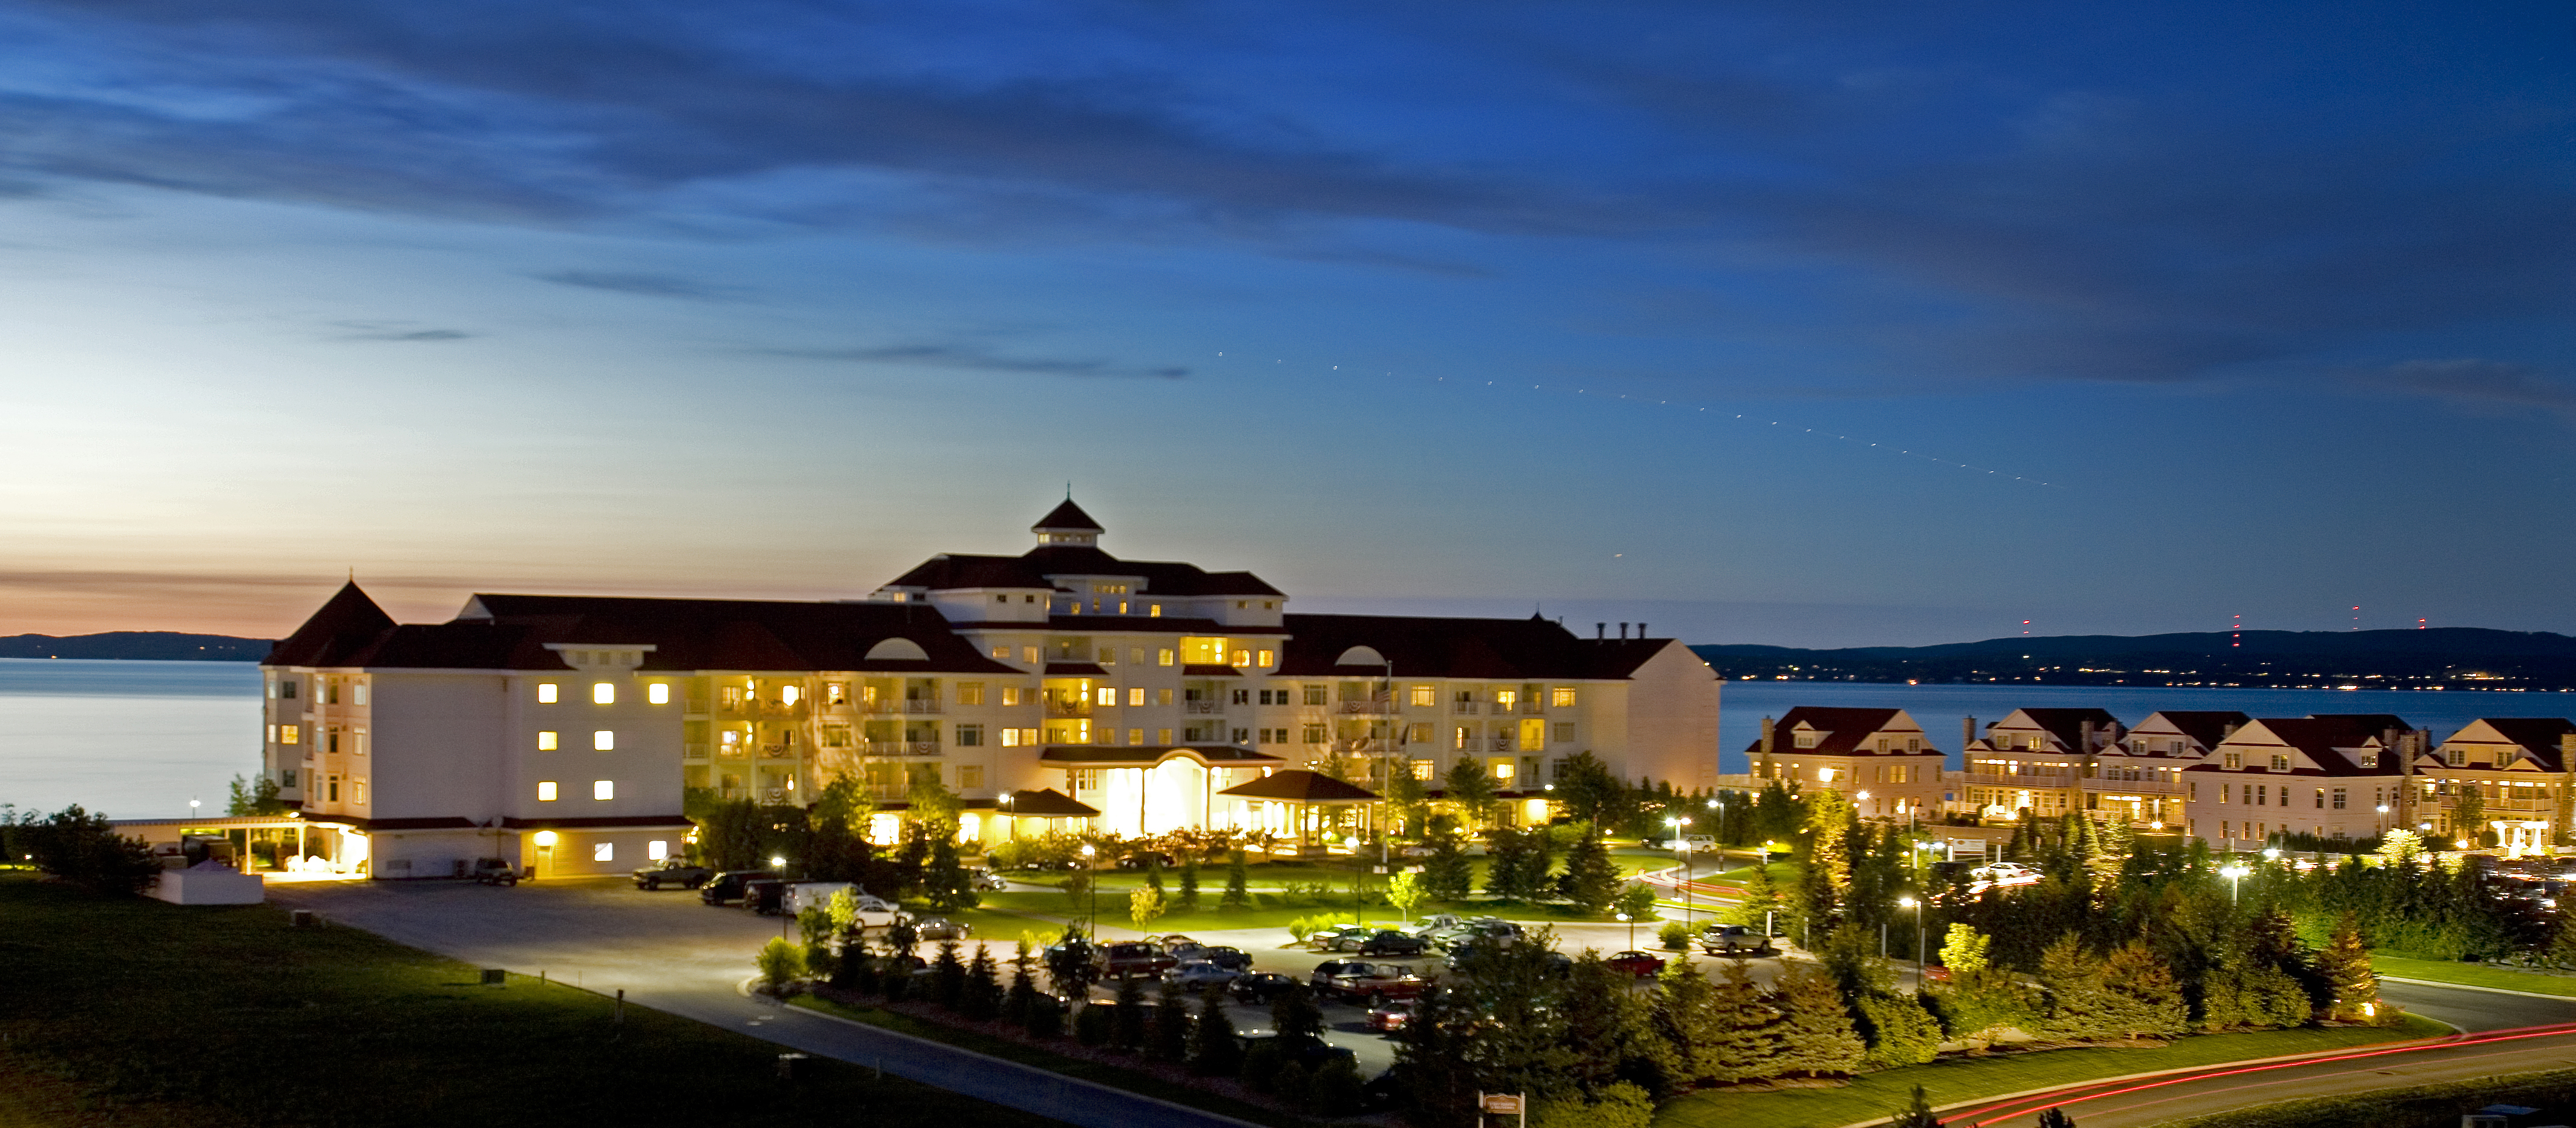 Inn At Bay Harbor Among The World S 500 Best Hotels Mynorth Com